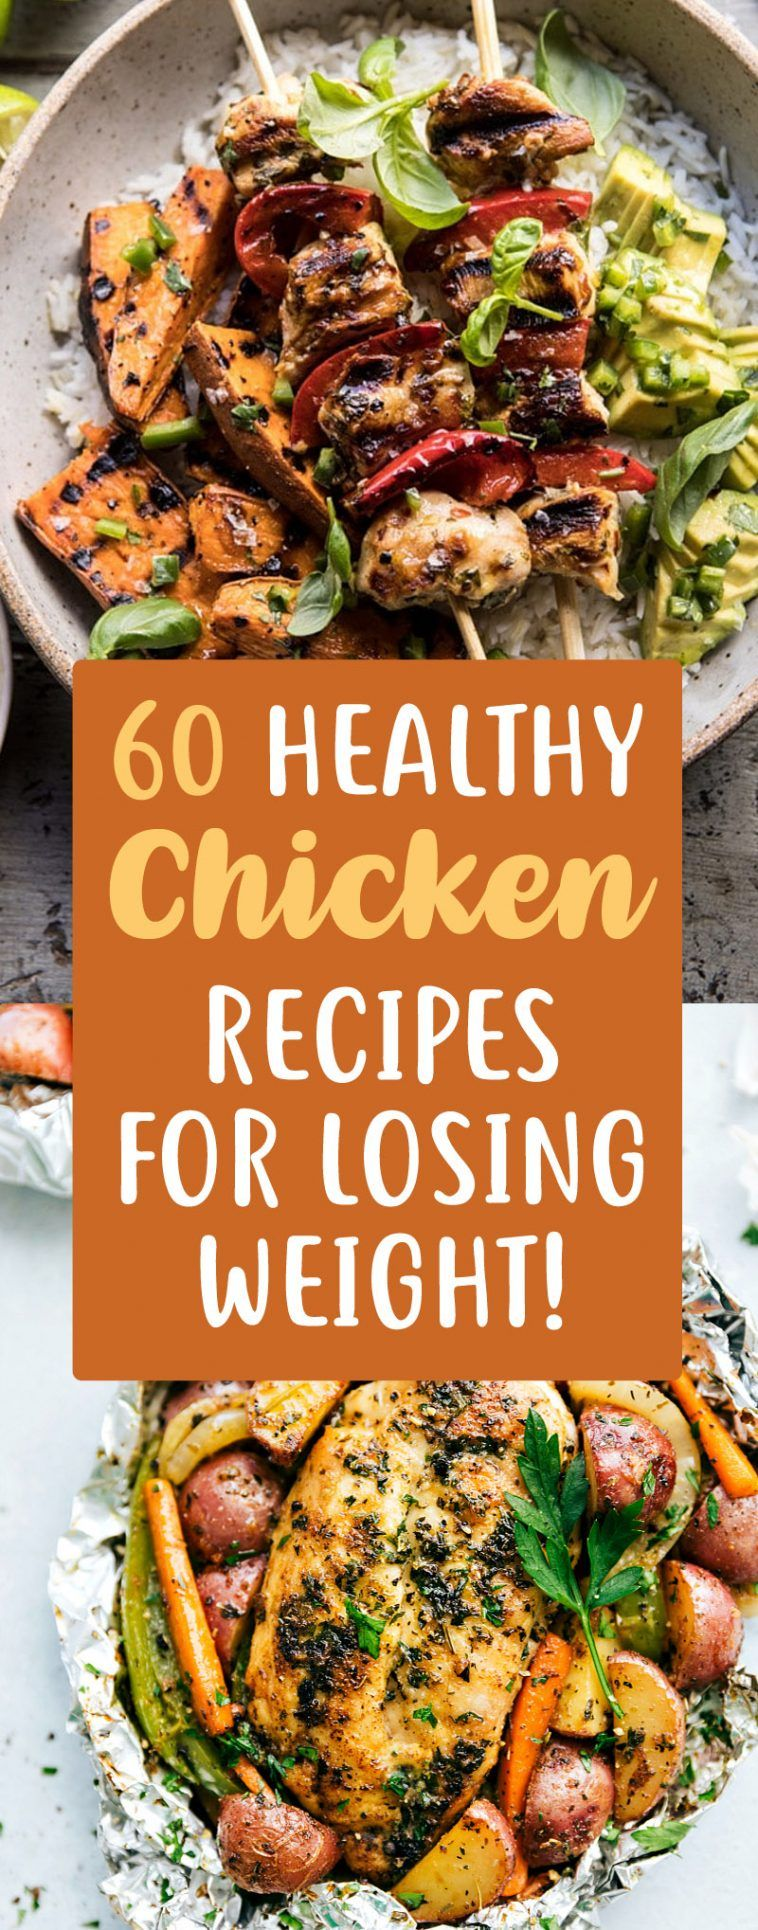 60 Insanely Delicious Chicken Recipes That Can Help You Lose Weight!